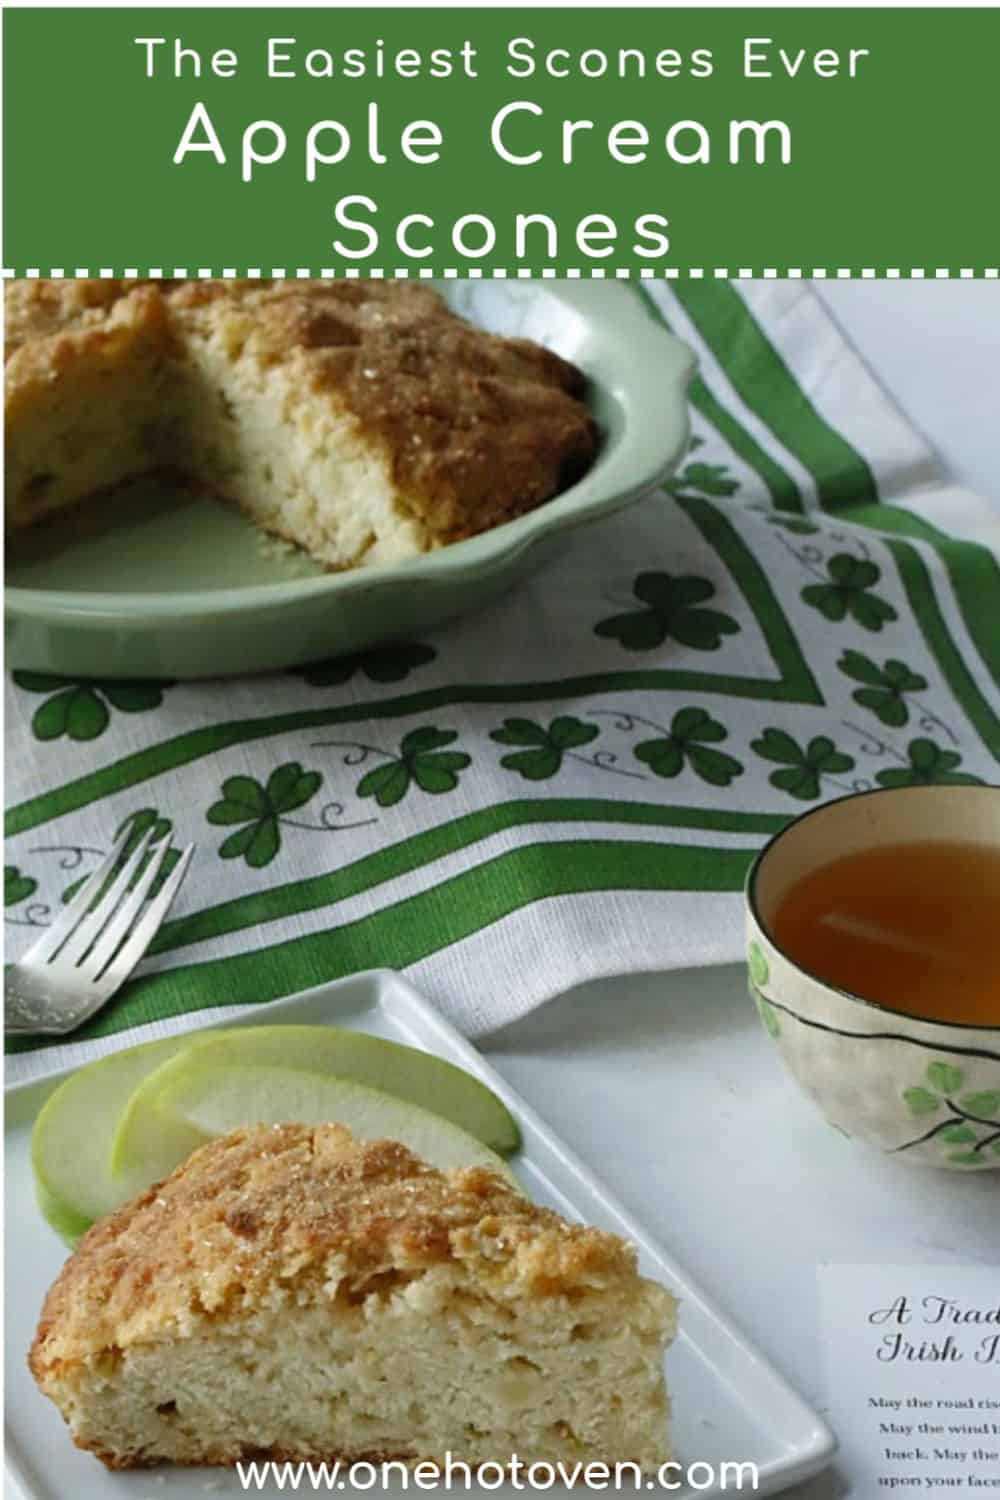 Apple Cream Scones in a baking pan with a cup of tea.